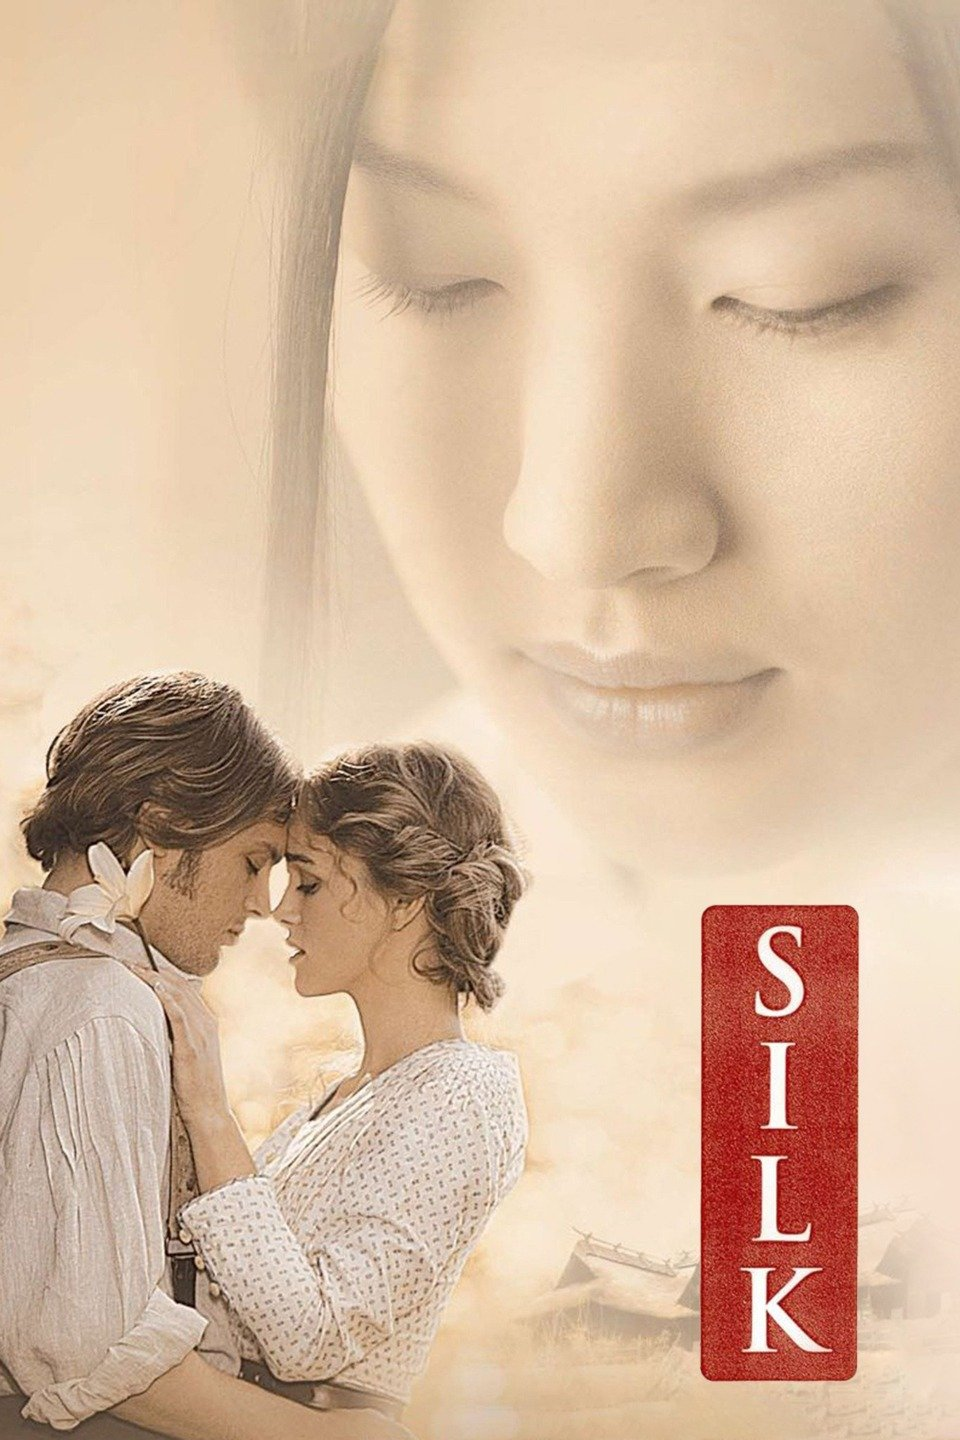 18+ Silk (2020) English 720p HDRip 700MB Download